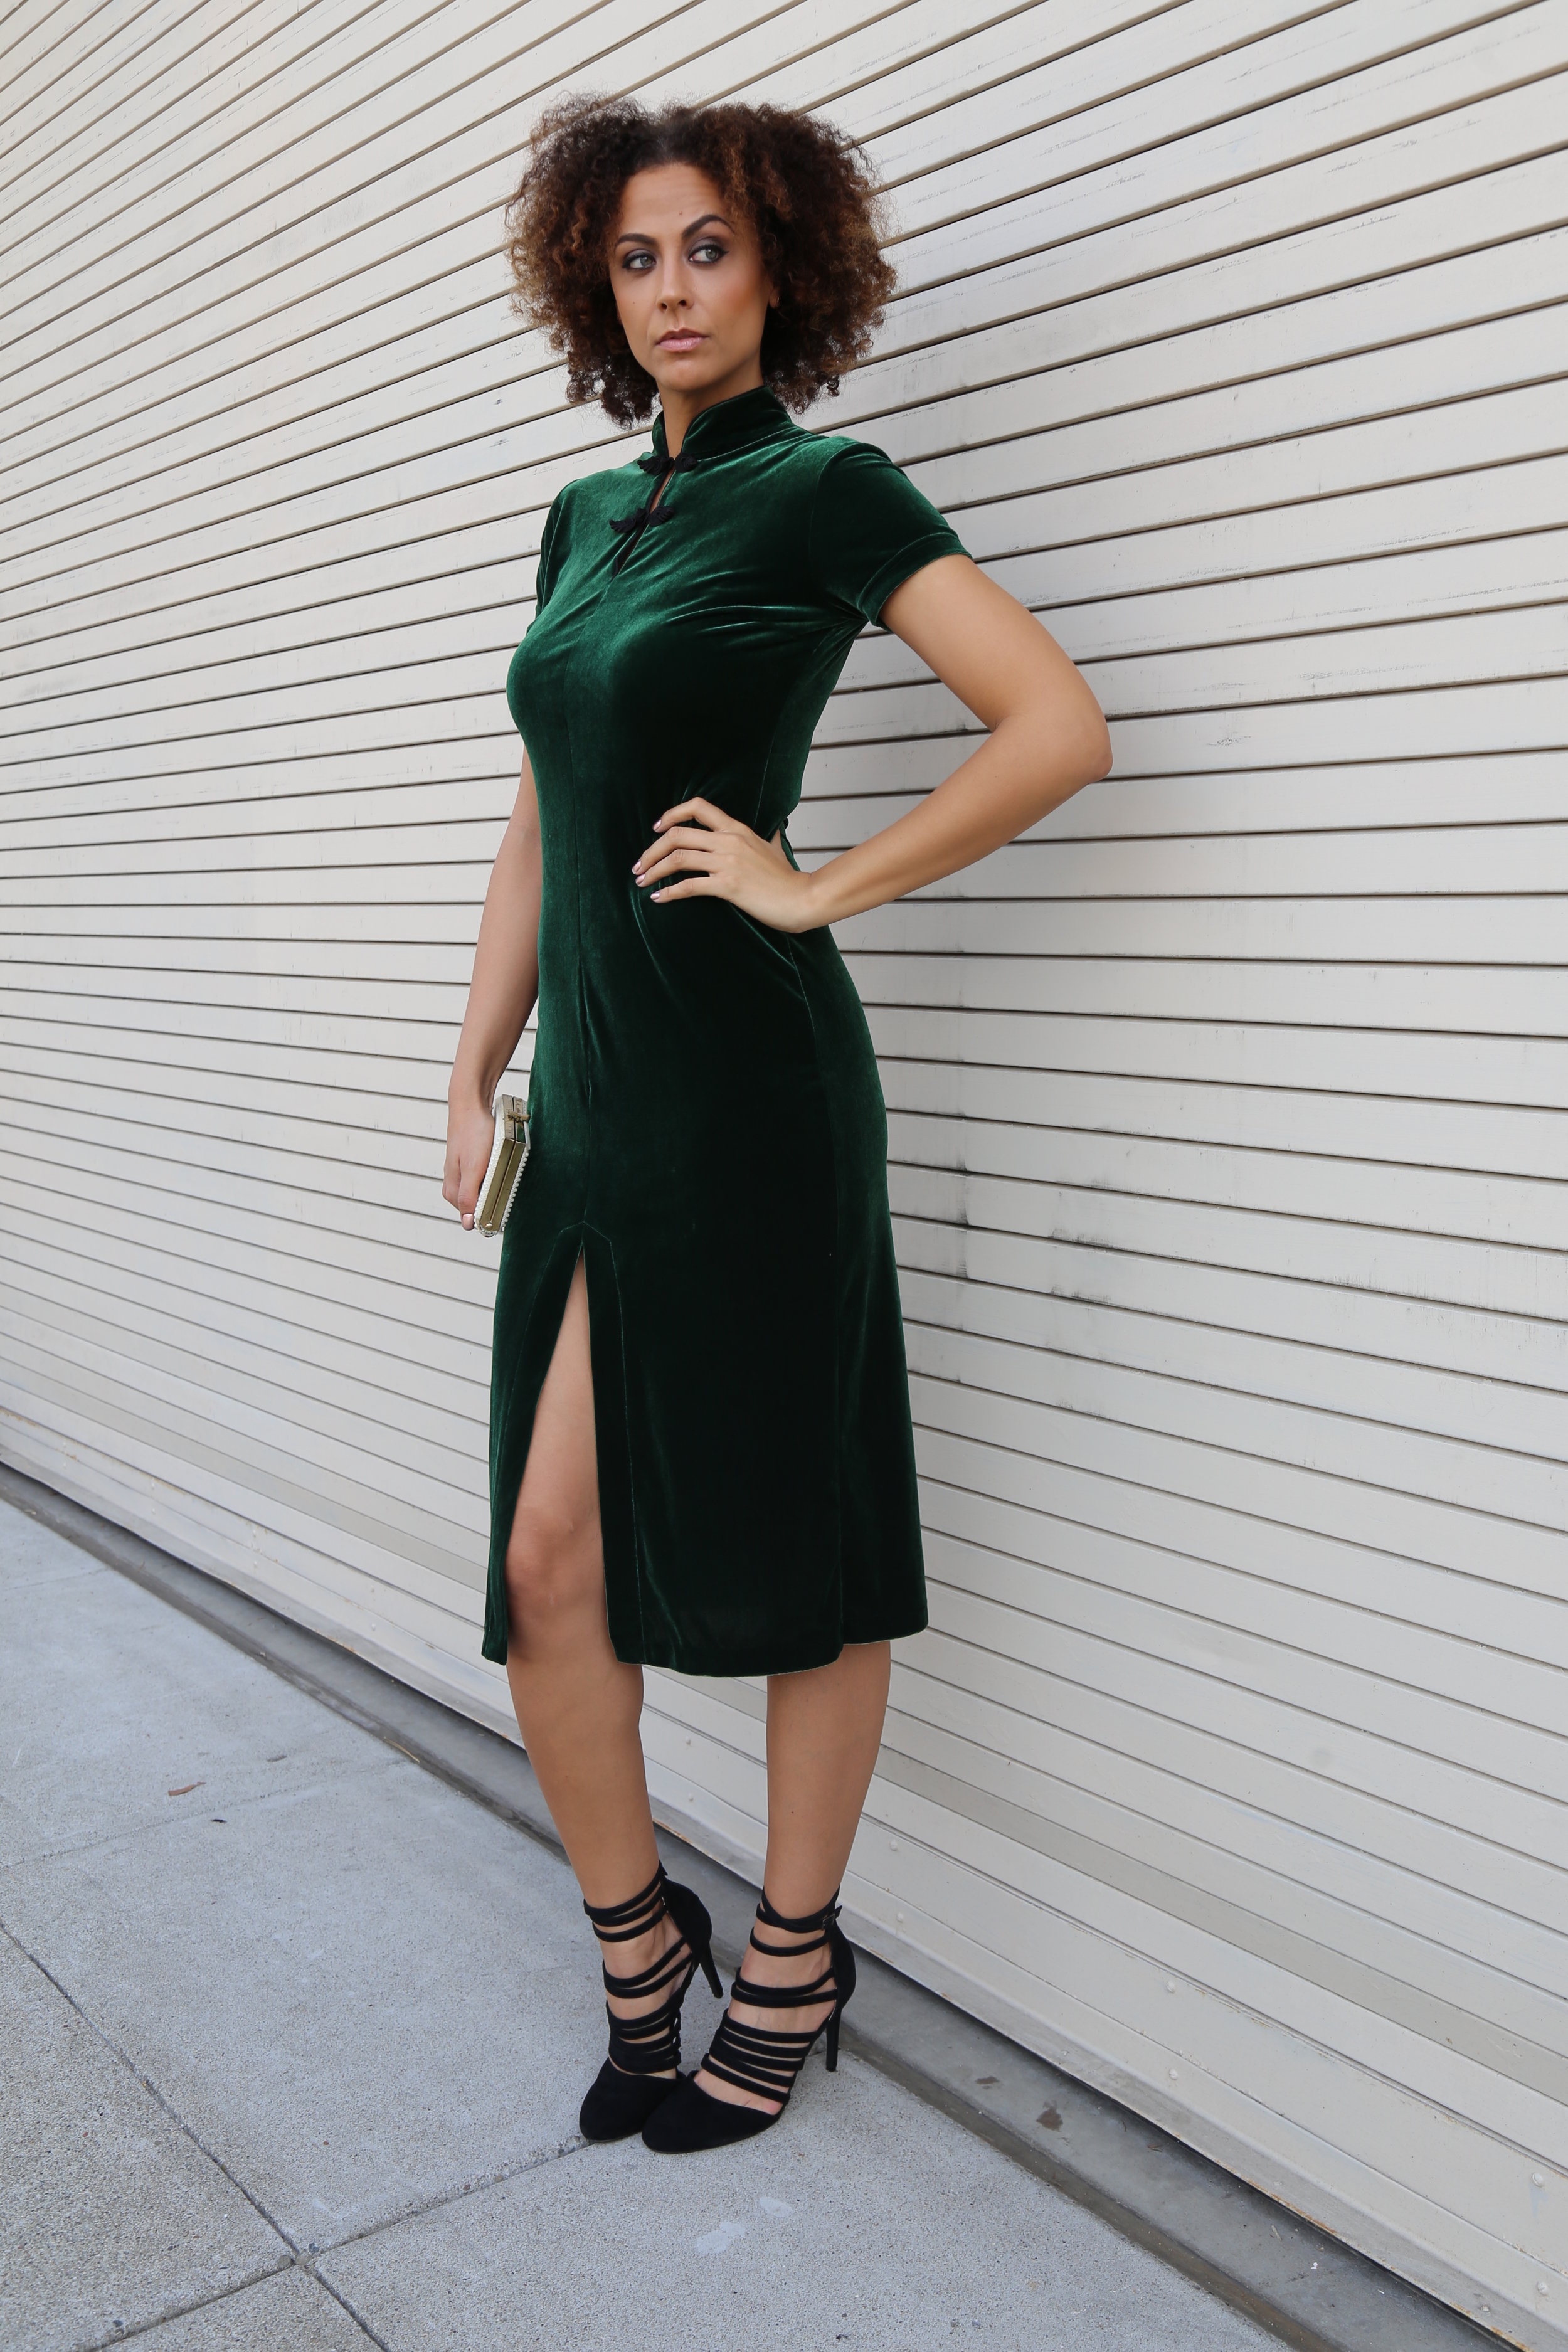 Velvet dress - Retro.Honey / LTS Emilia Strappy Heel (shown in size 12) - Long Tall Sally /Pearl Clutch - Thrifted  Photo Credit:  LaKeela Smith Photography